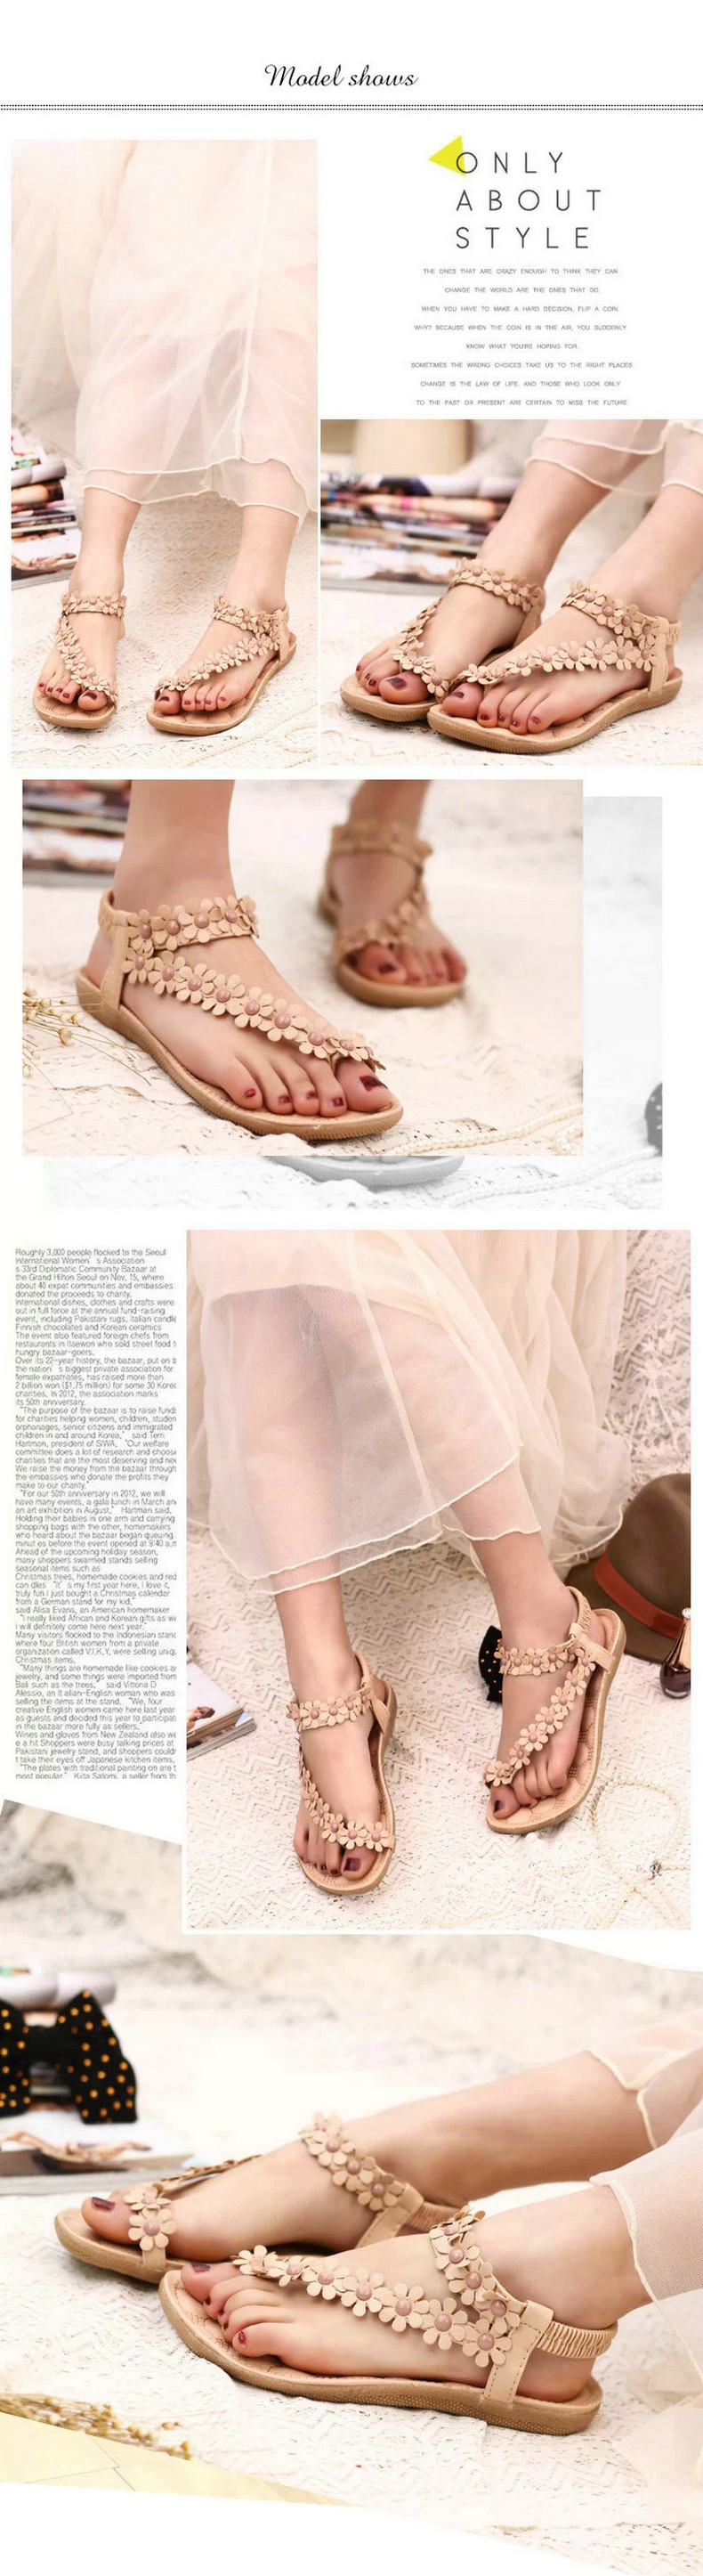 Cuculus 2018 Women Sandals Summer Style Bling Bowtie Fashion Peep Flat Lady Jelly Shoes Sepatu Sendal Wanita How To Place Order